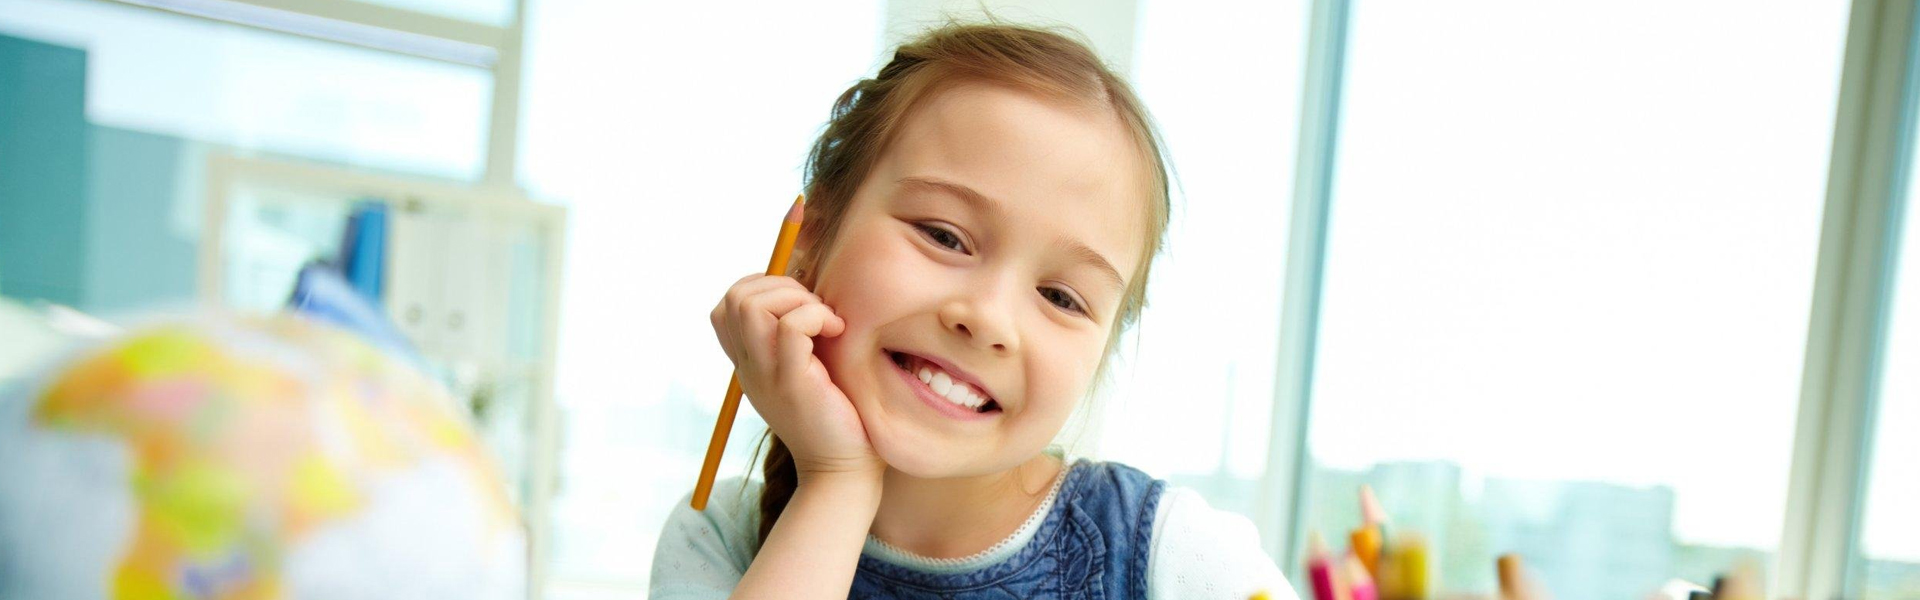 Teaching Good Manners and Proper Etiquette for Kids